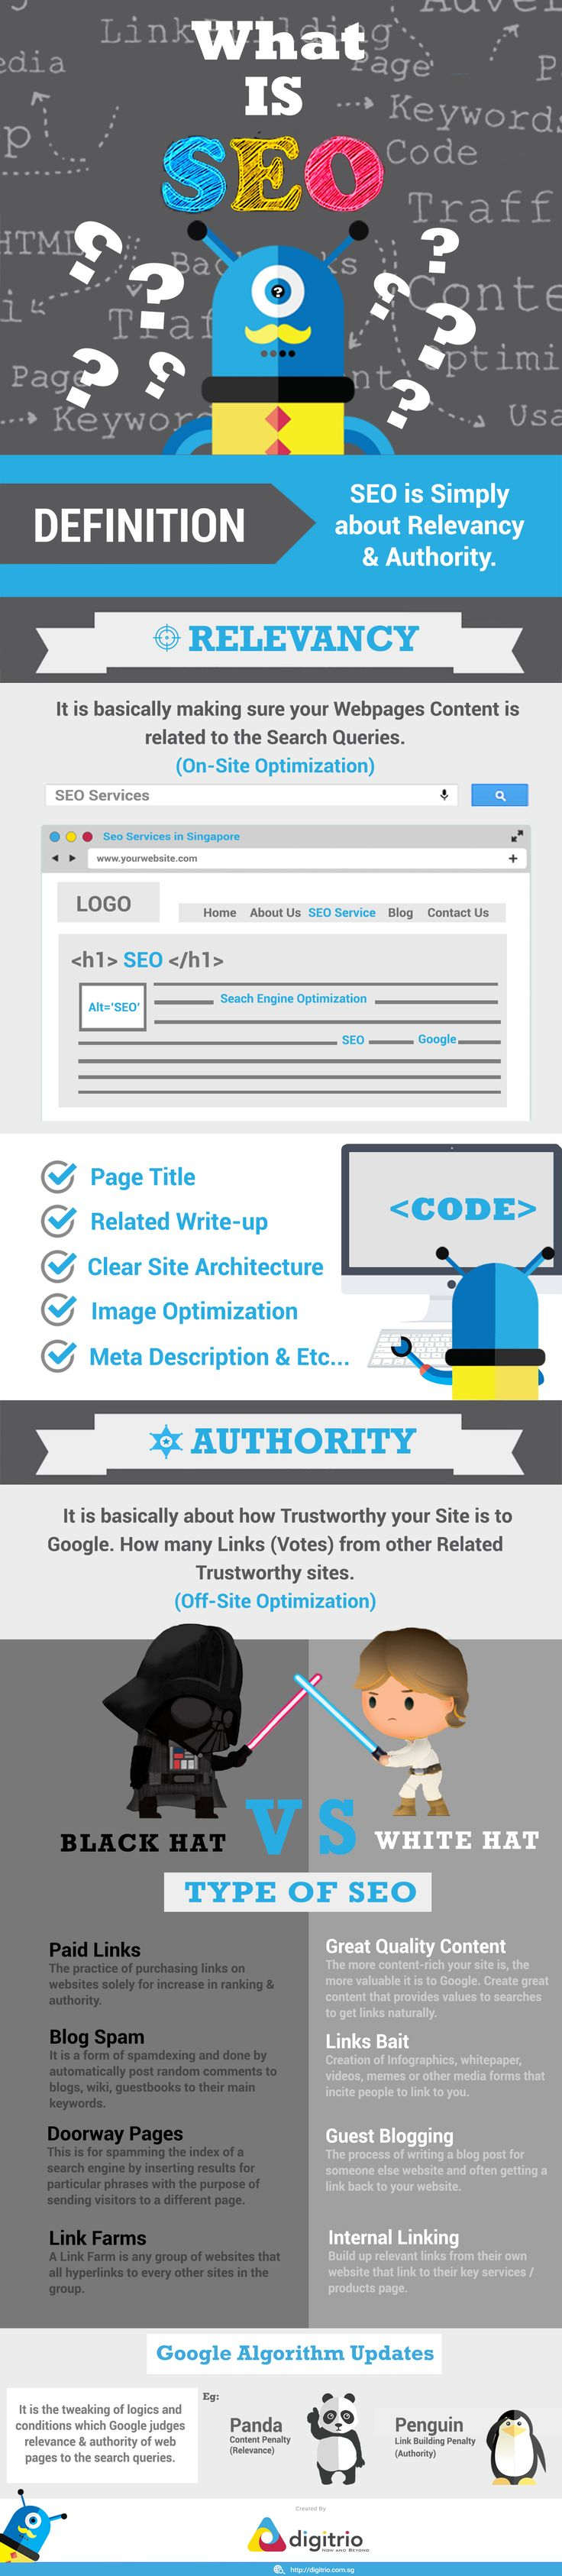 Simple Explanation to What is SEO http://fleetheratrace.blogspot.co.uk/2015/02/top-20-seo-tips-and-tricks-for-google.html #SEO search engine optimization tips and tricks #infographic #SEO #SEO2015 #internetmarketing #Infographics #SEM #Google The best Internet Marketing and SEO Inforgraphics.